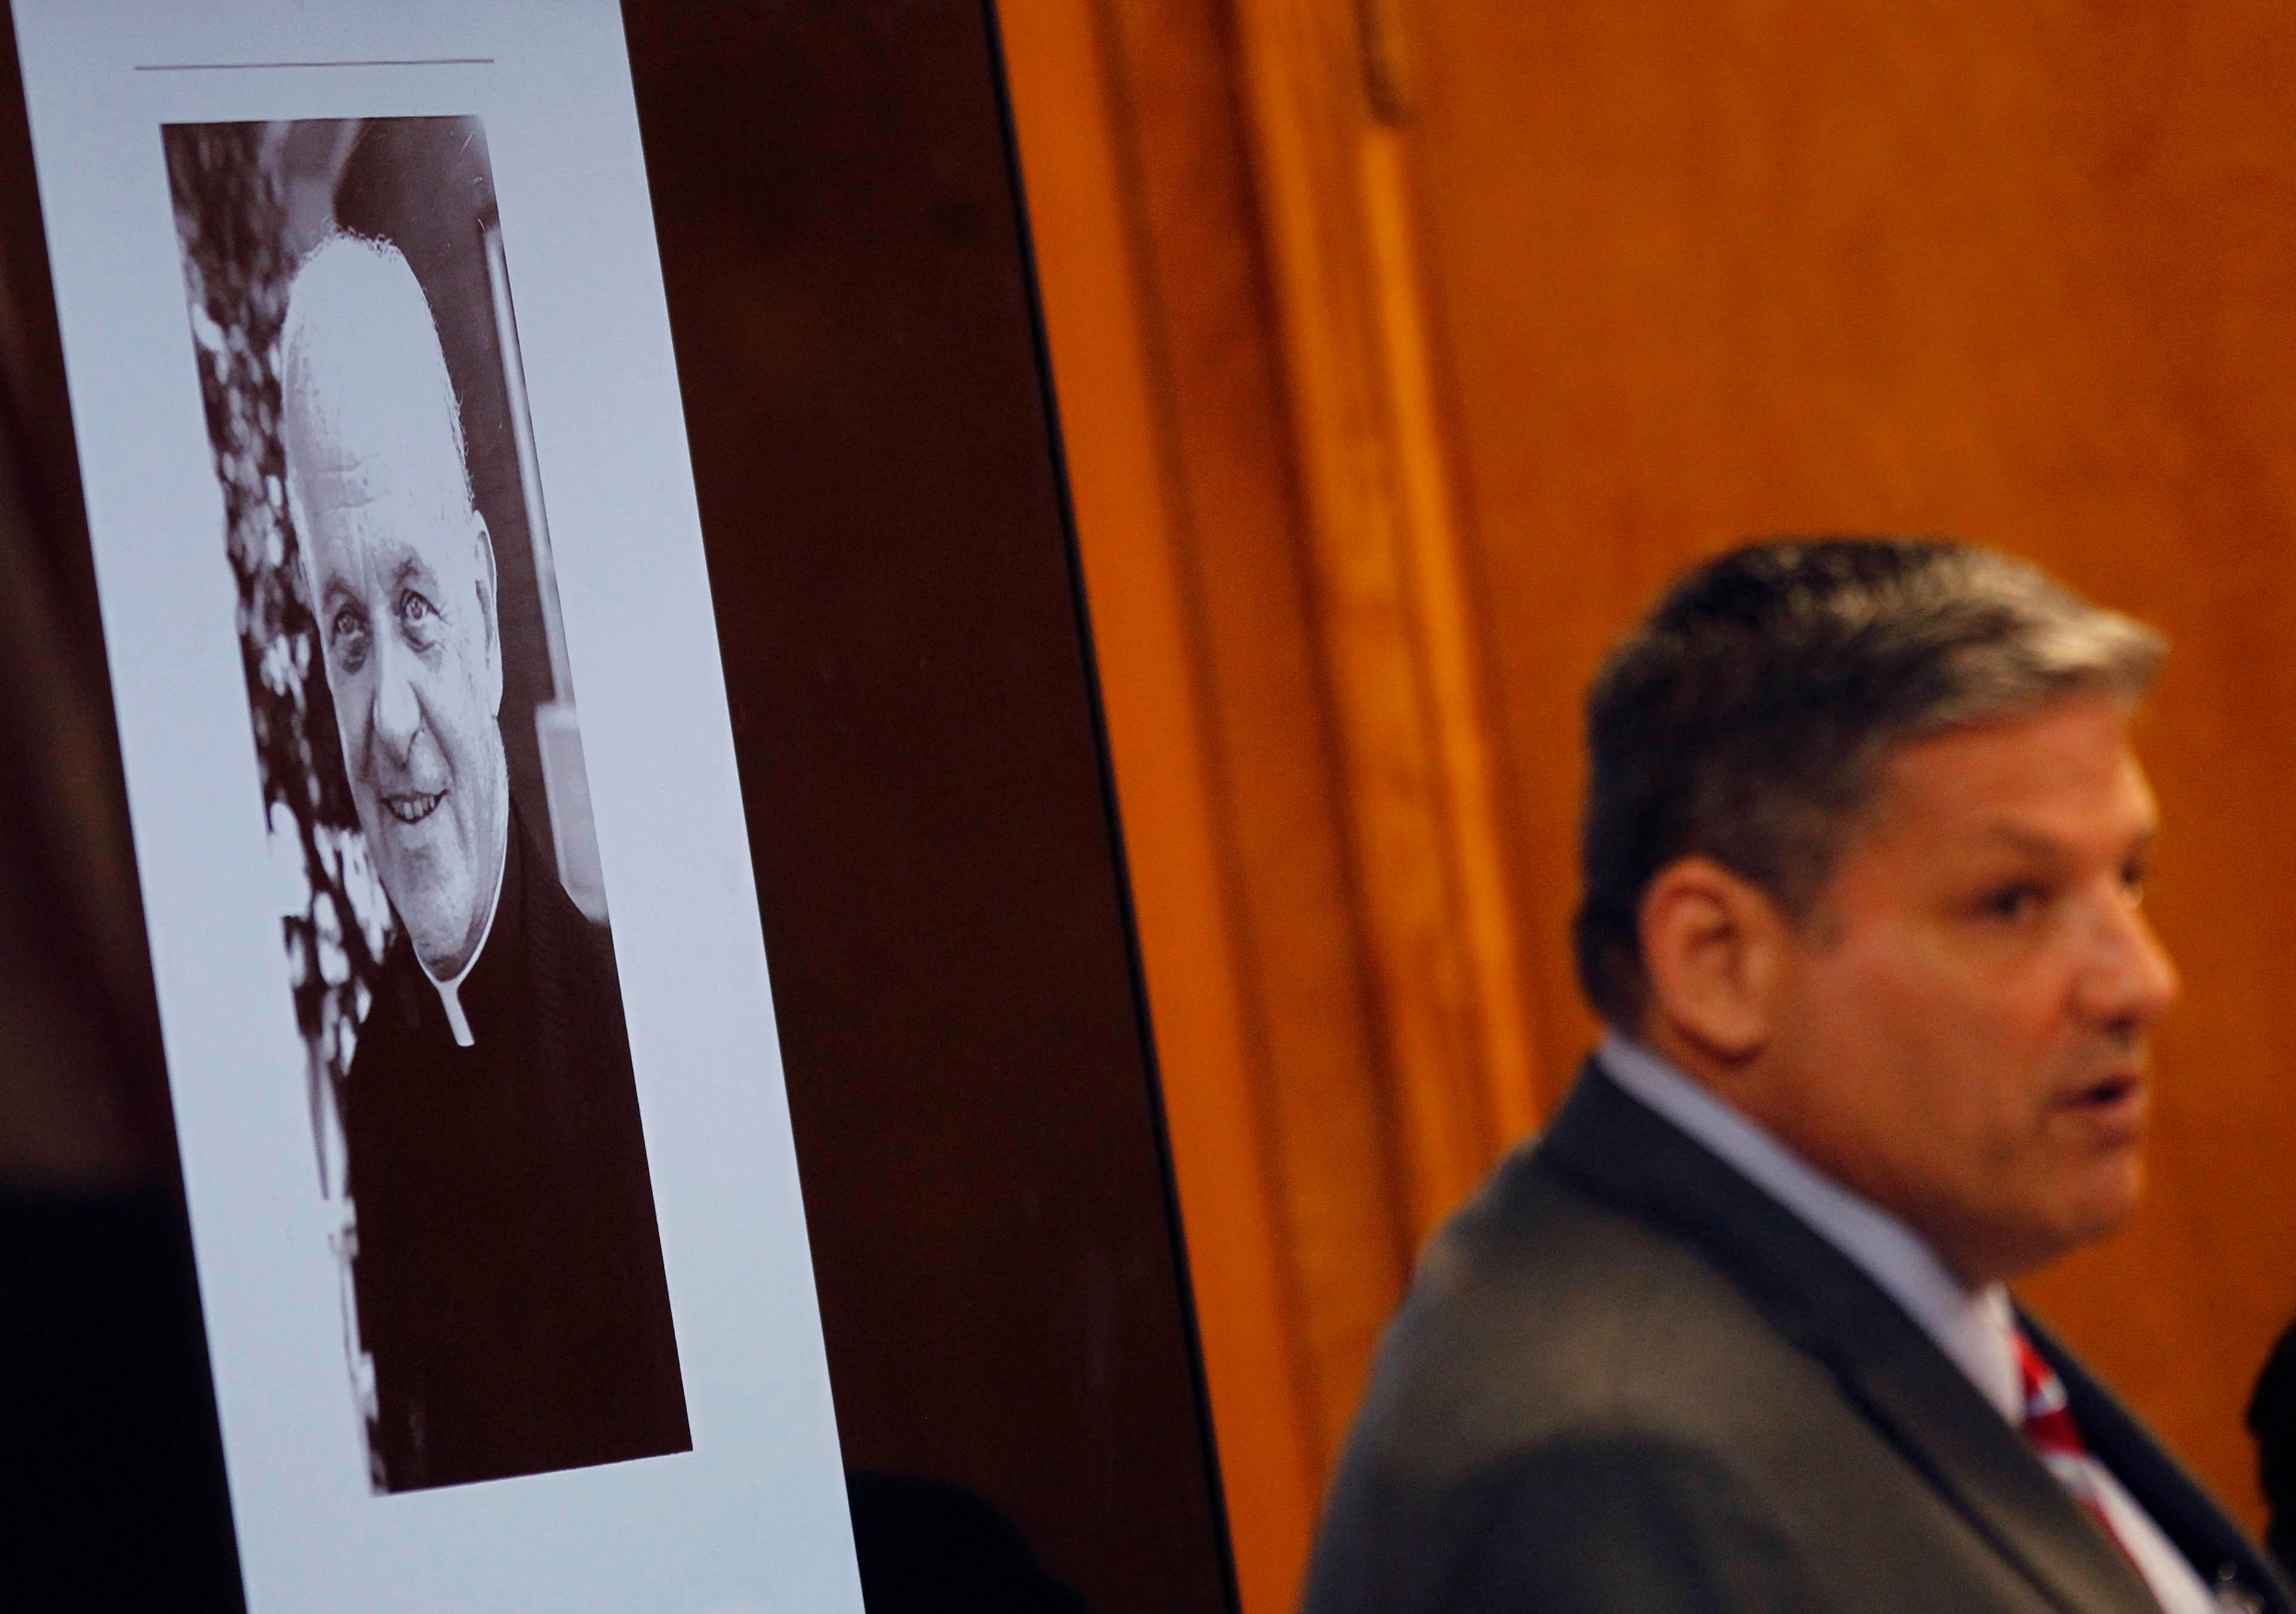 A photograph of Rev. Joseph O'Brien is views behind Hidalgo County Assistant District Attorney Michael Garza during testimony in John Bernard Feit's trial for the 1960 murder of Irene Garza Tuesday, December 5, 2017, at the Hidalgo County Courthouse in Edinburg. O'Brien spoke out to several people that Feit admitted to him that he committed the Garza's murder in 1960, O'Brien died in 2005. (Nathan Lambrecht/The Monitor/Pool)